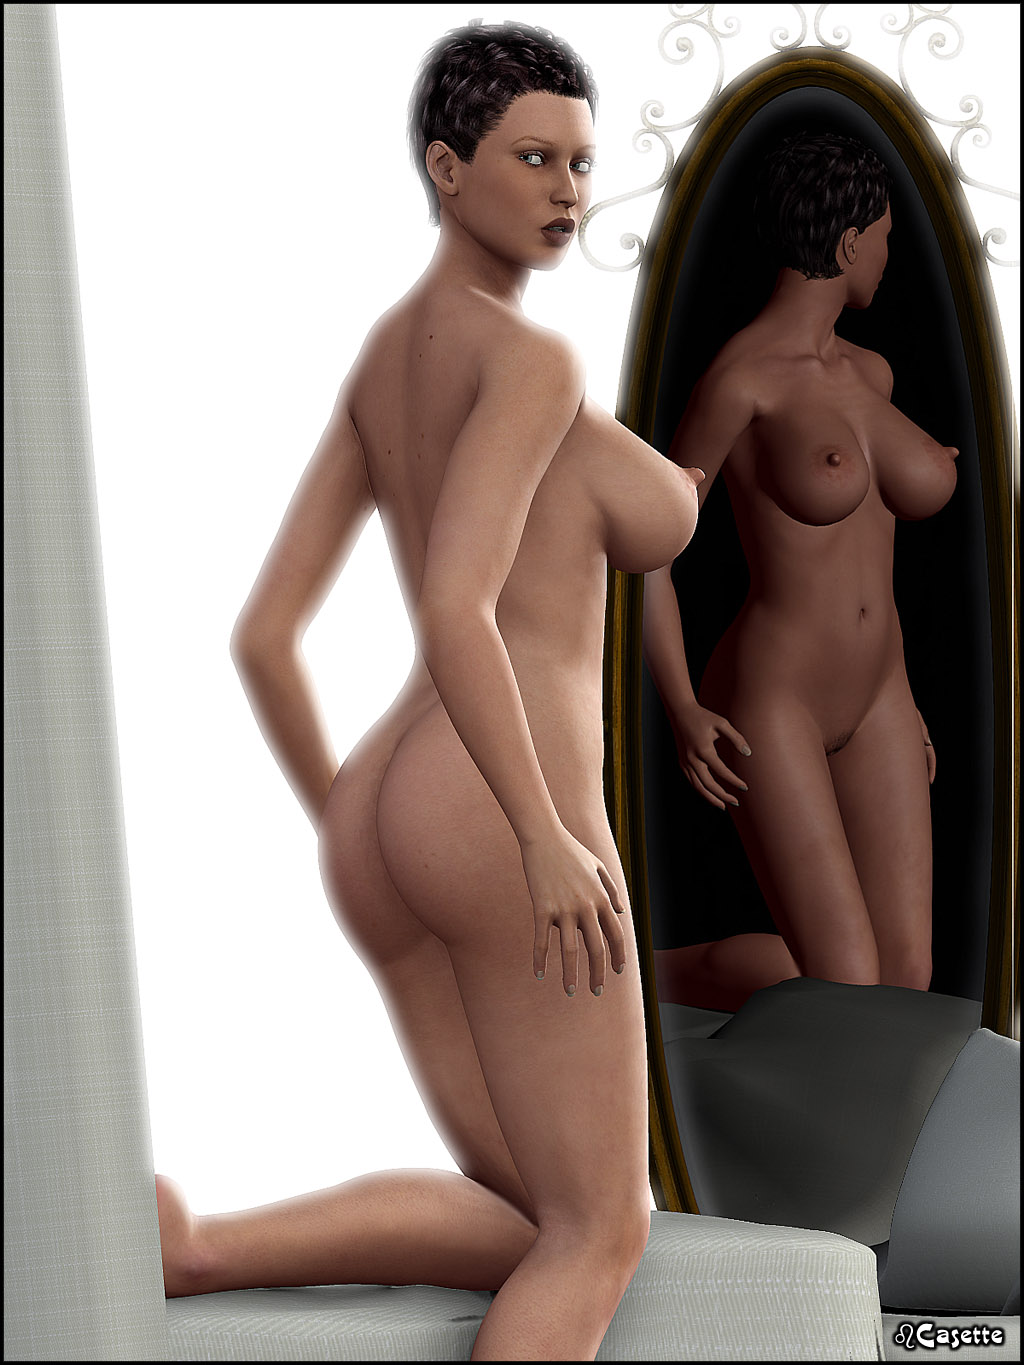 Xxx catoons girls 3d photos anime picture